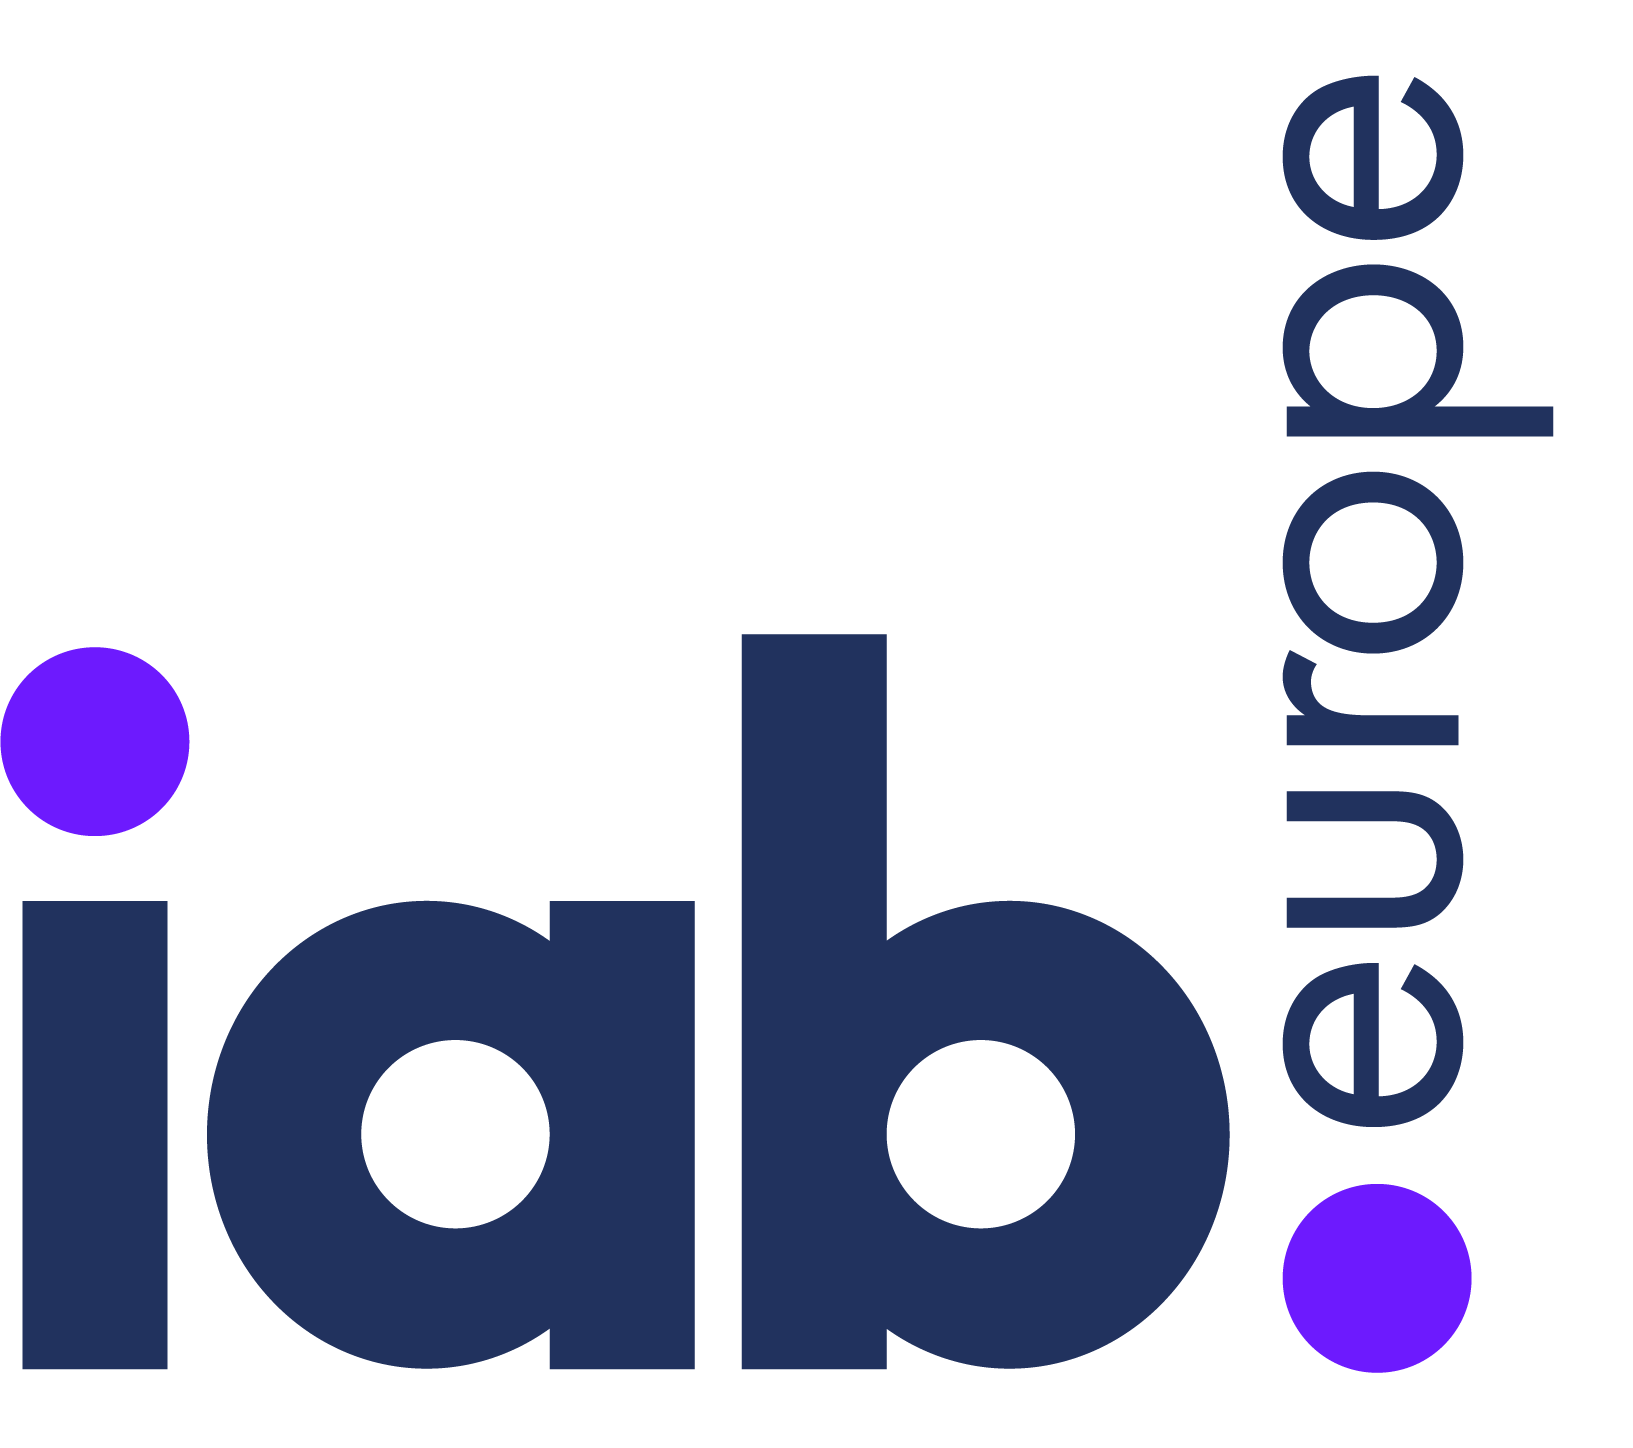 IAB Europe AdEx Benchmark 2019 Study reveals European Digital Advertising Market Exceeds €64bn in 2019